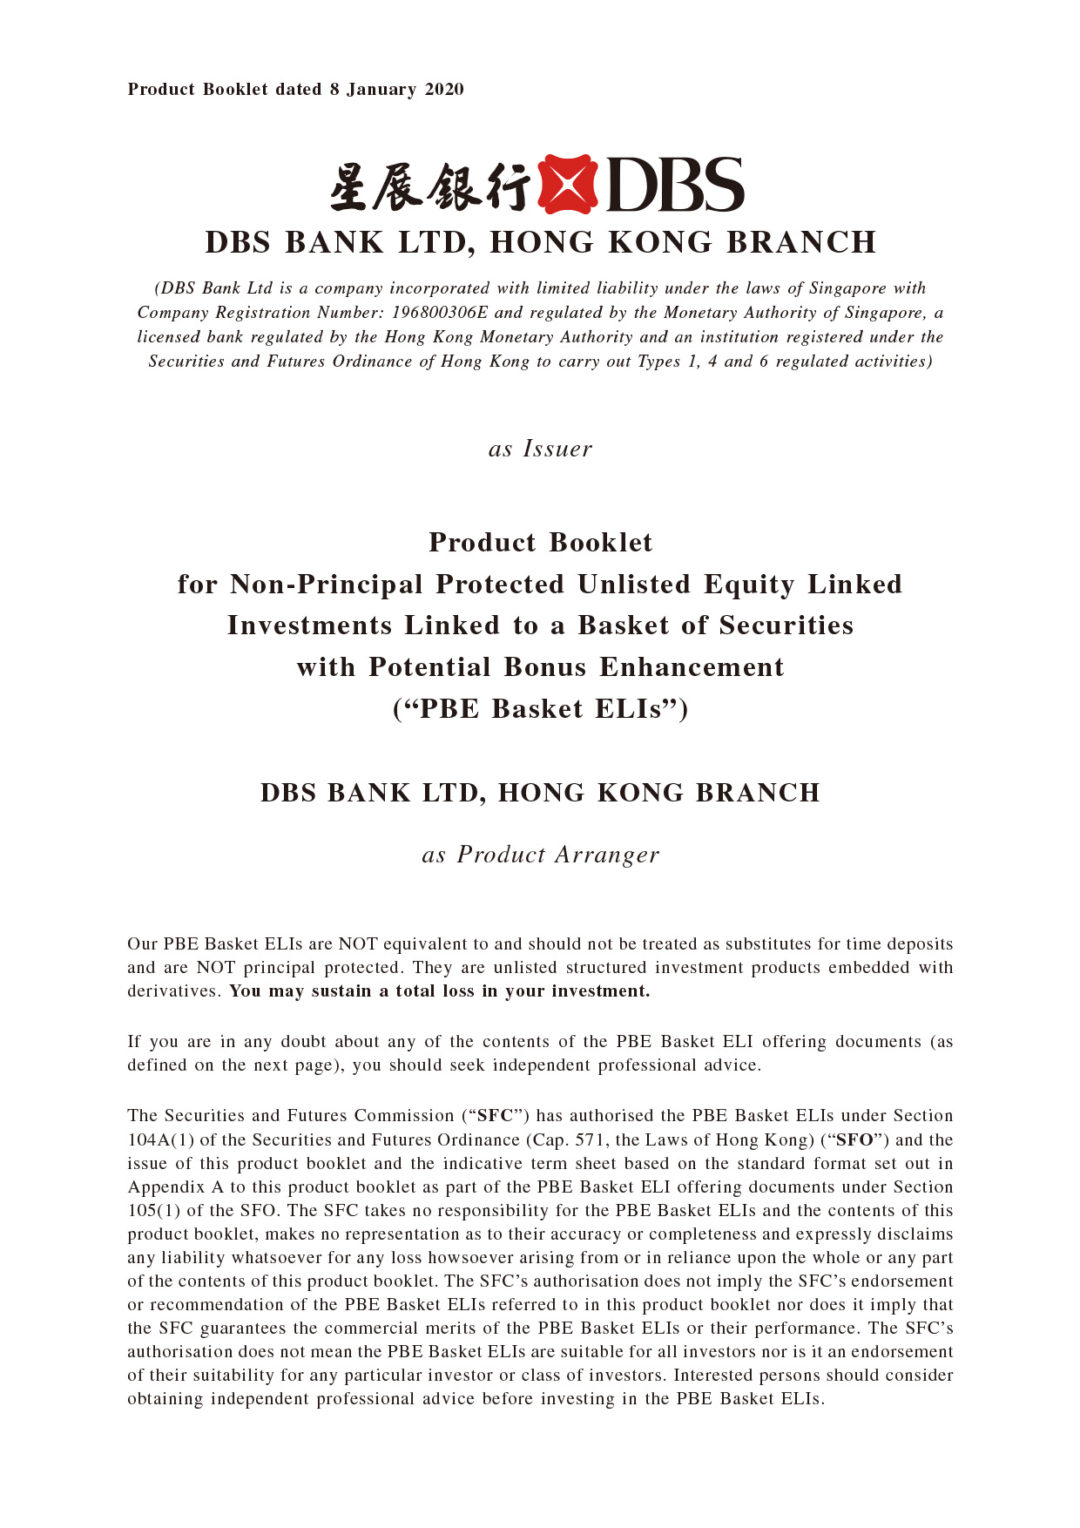 DBS Bank Ltd, Hong Kong Branch